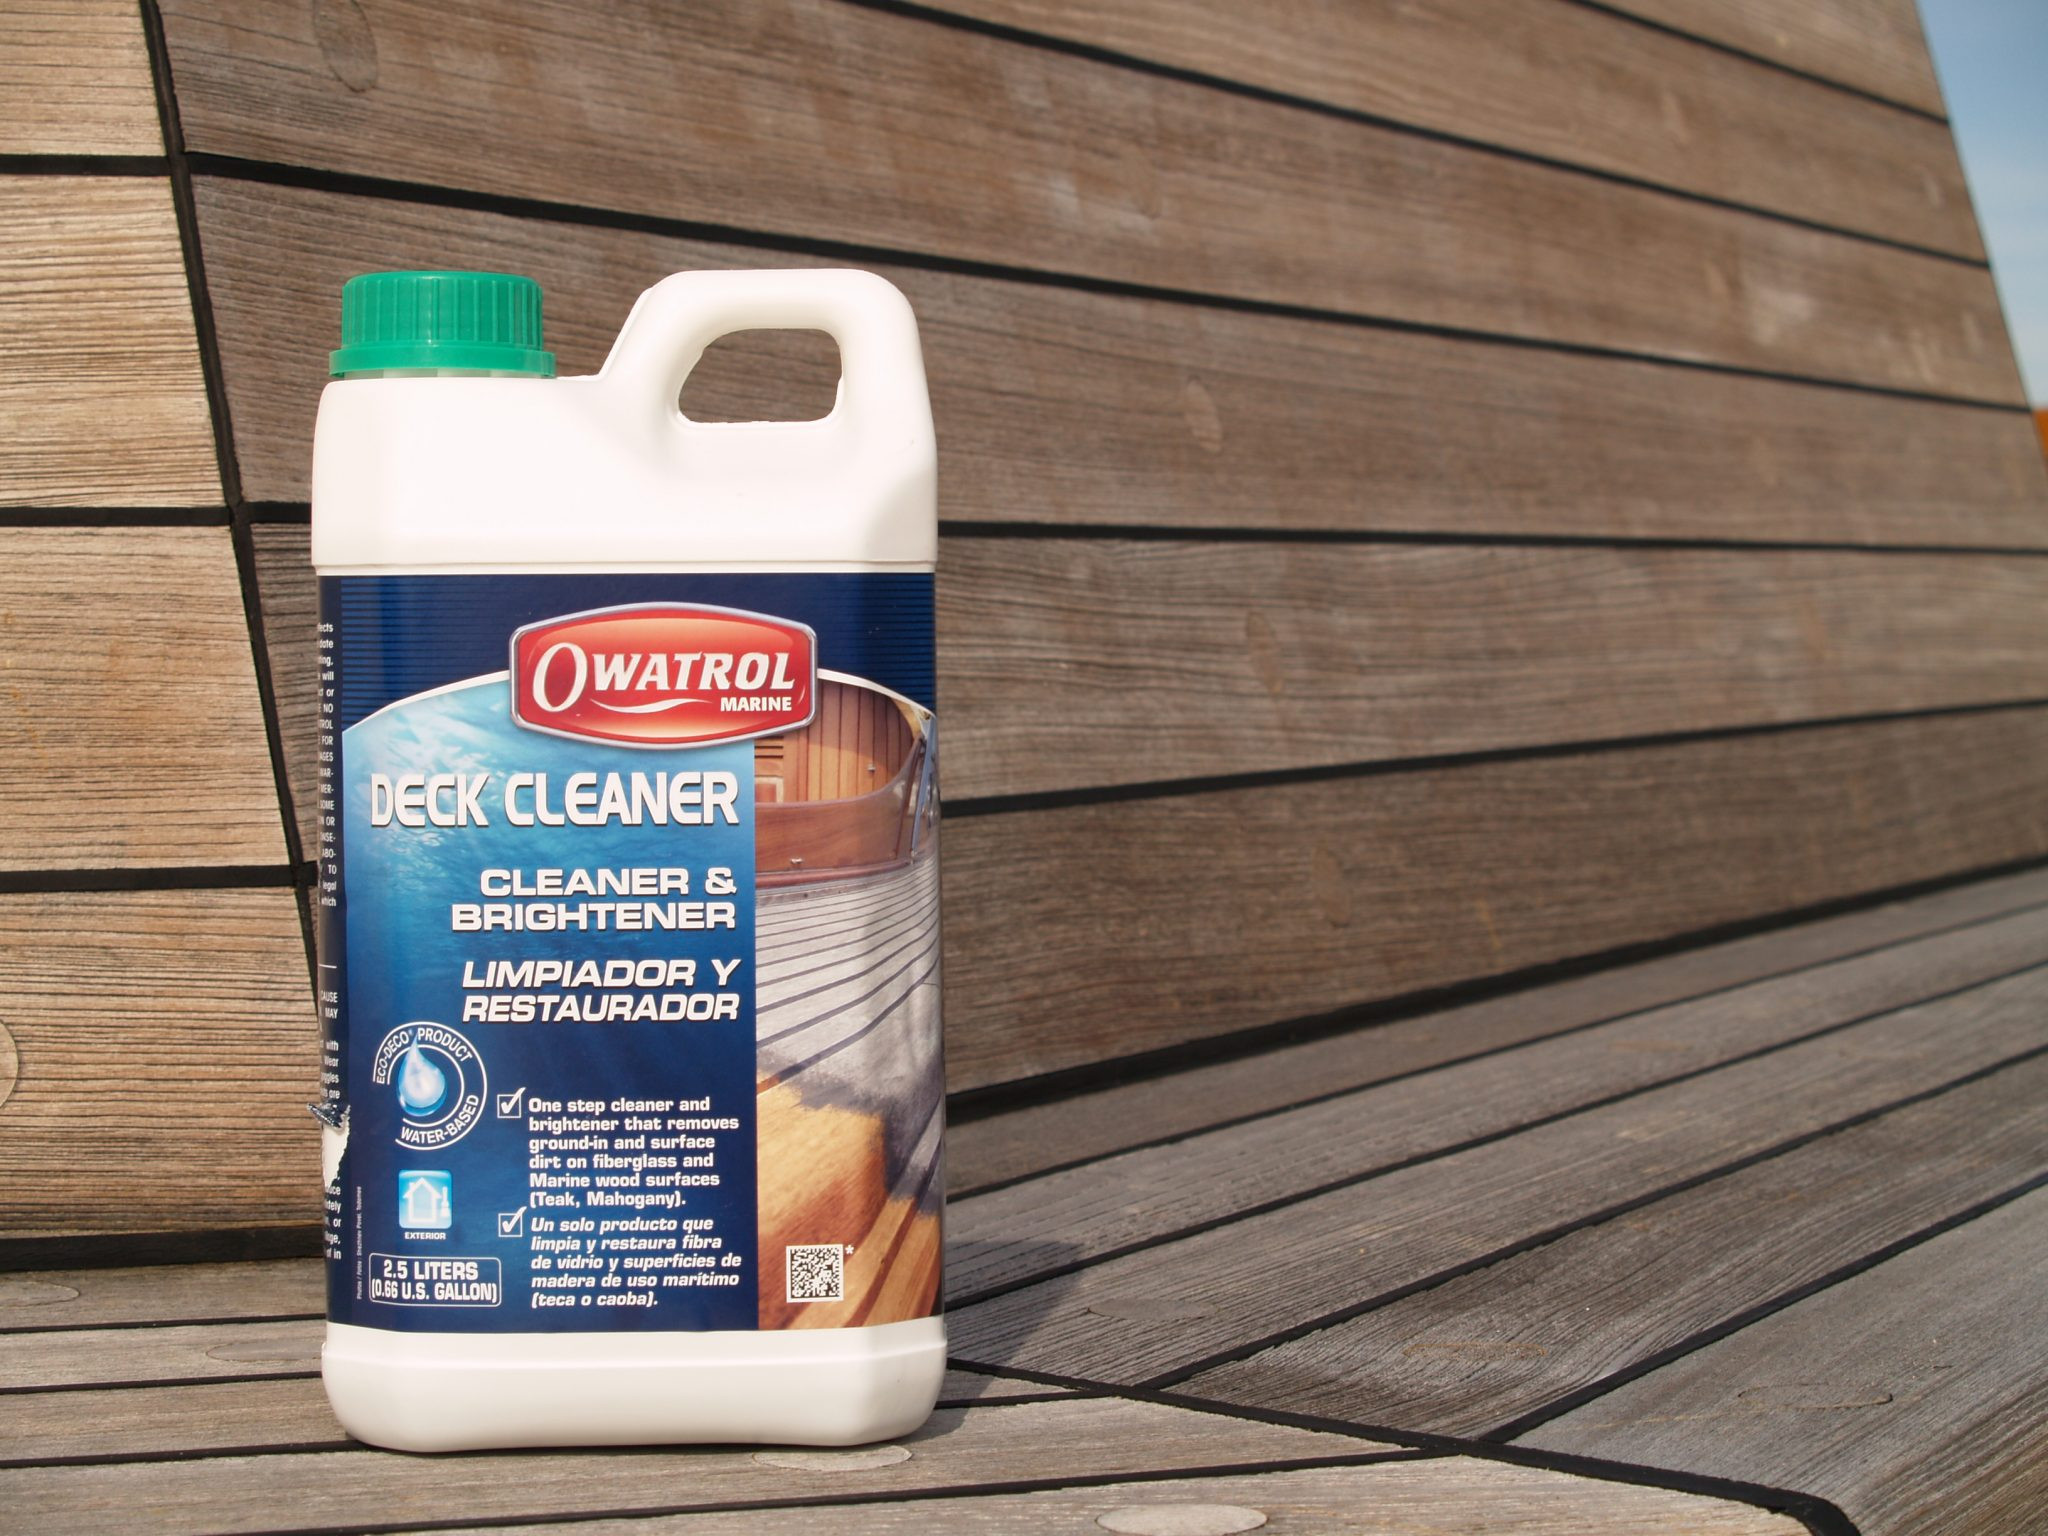 hardwood floor cleaning products of deck cleaner boat deck cleaner owatrol direct regarding add to basket